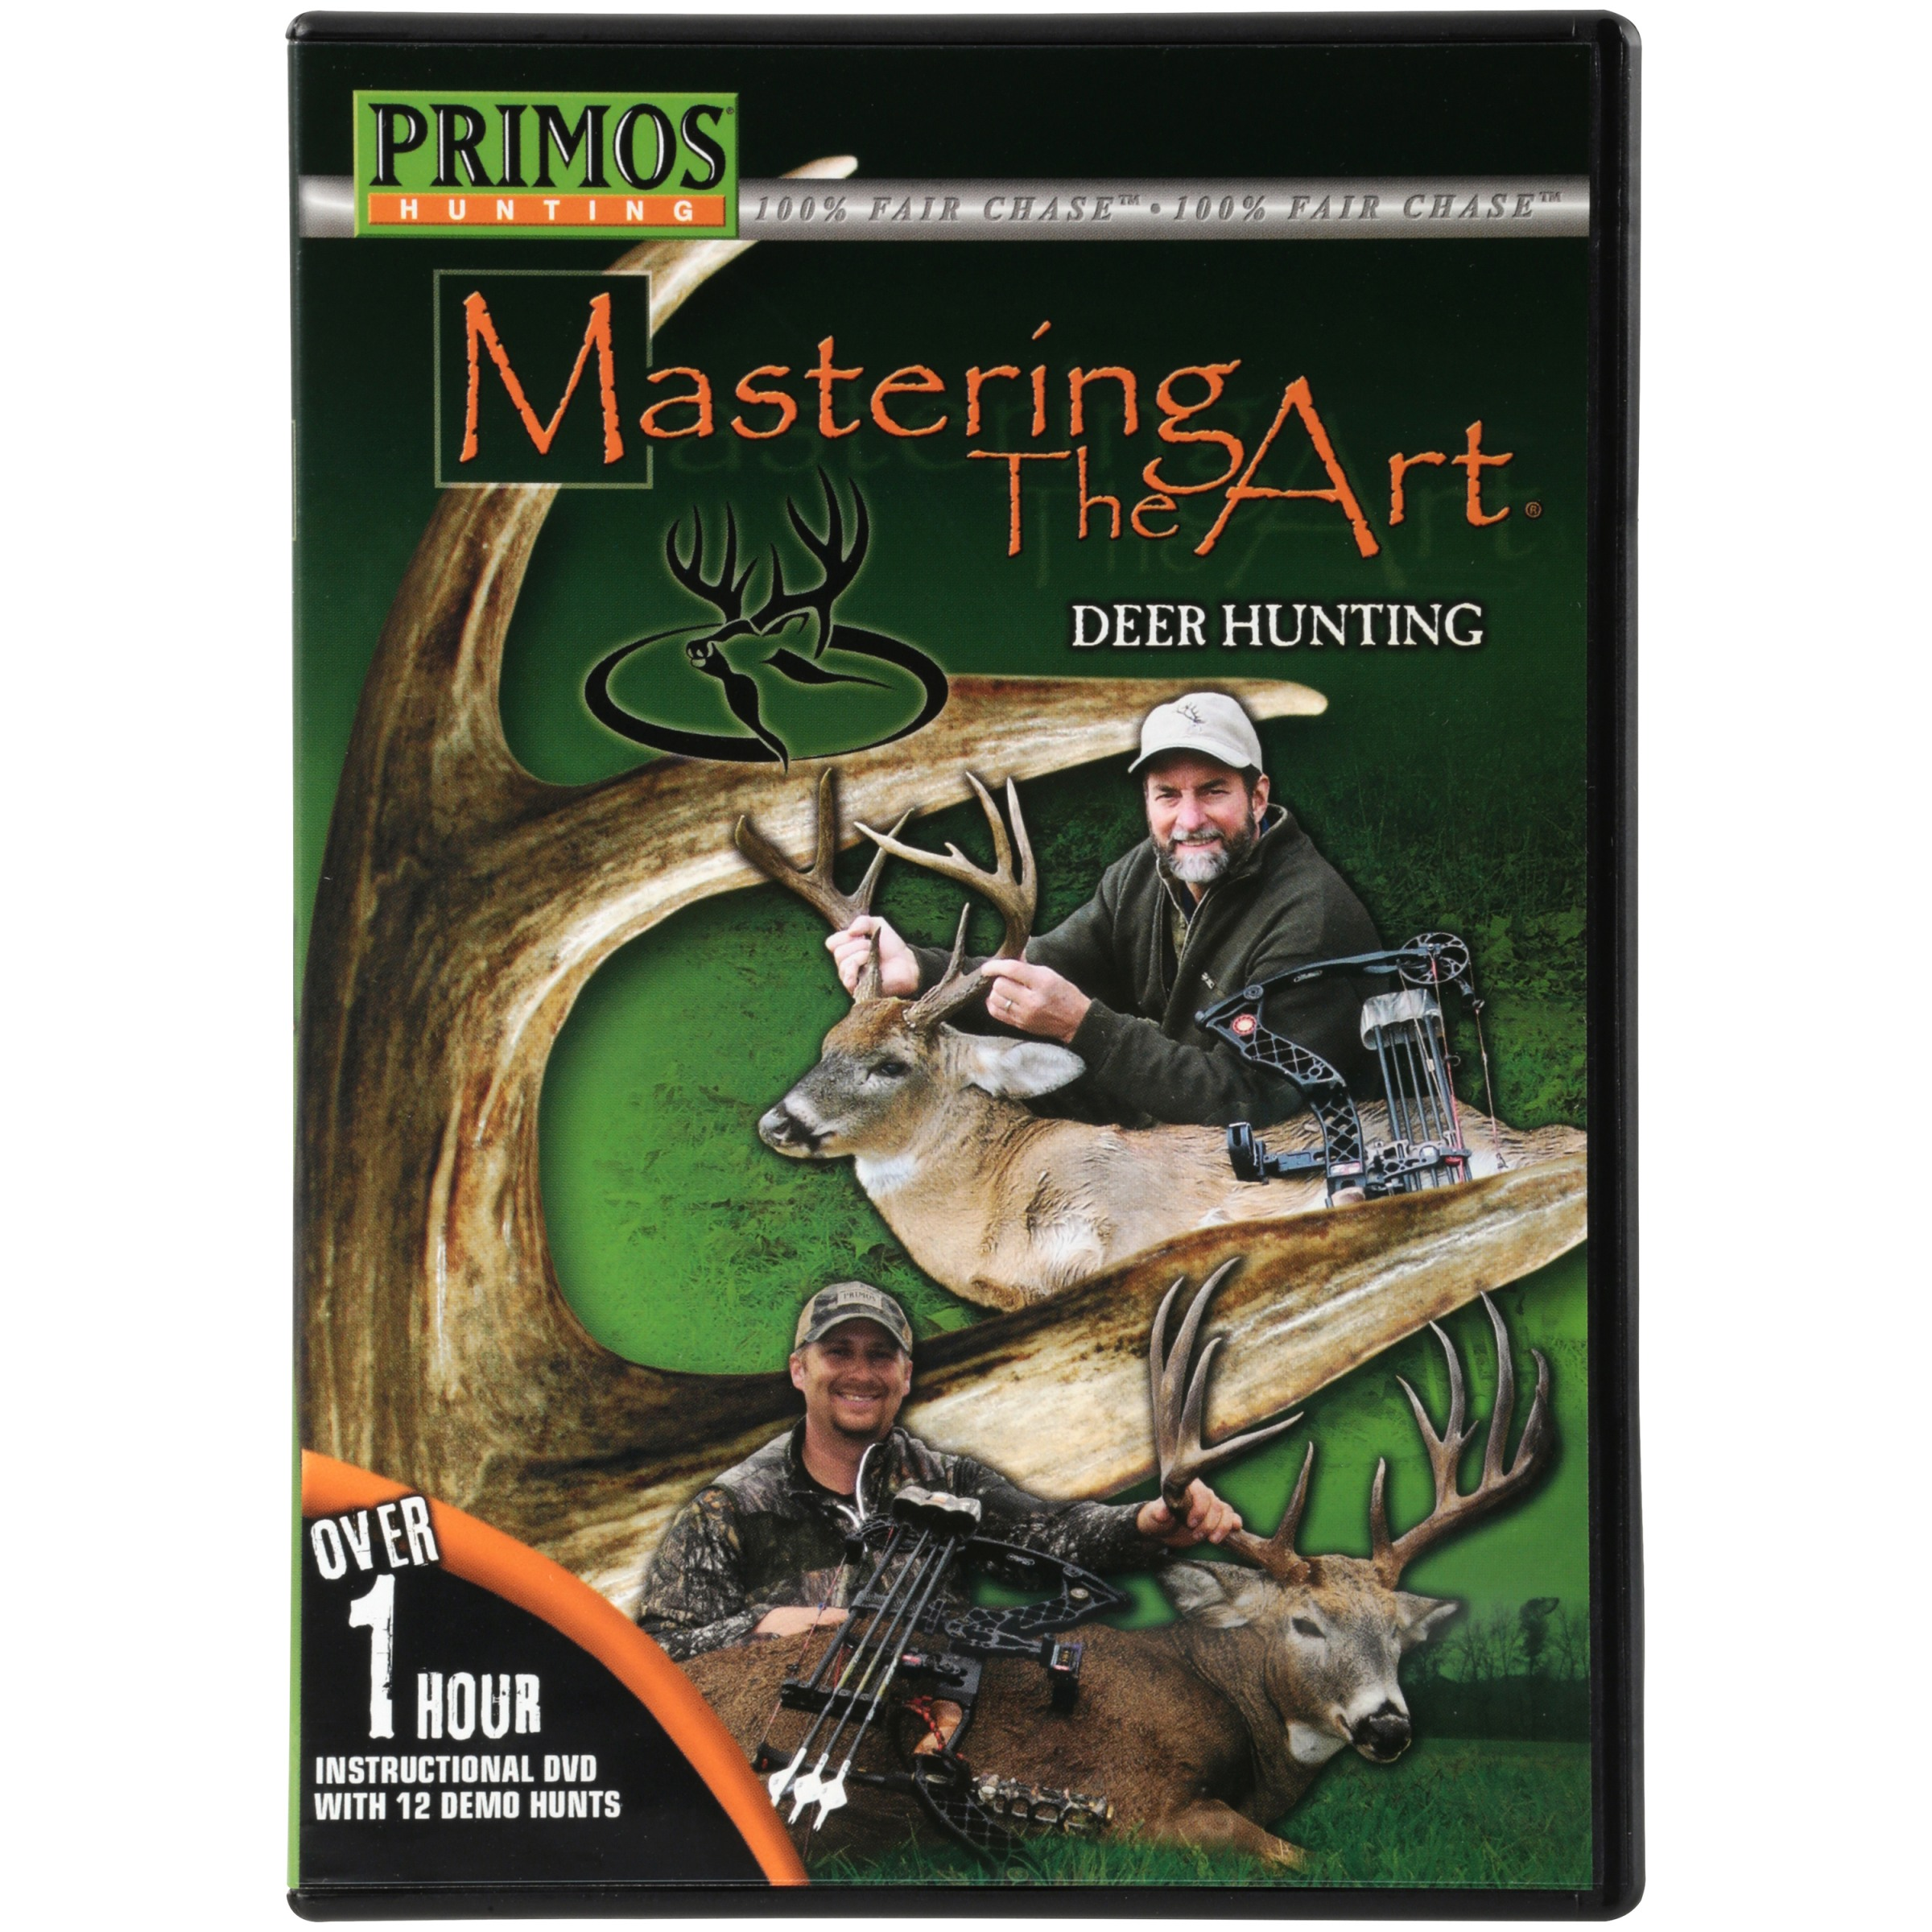 Primos Hunting Mastering the Art Deer Hunting Instructional DVD